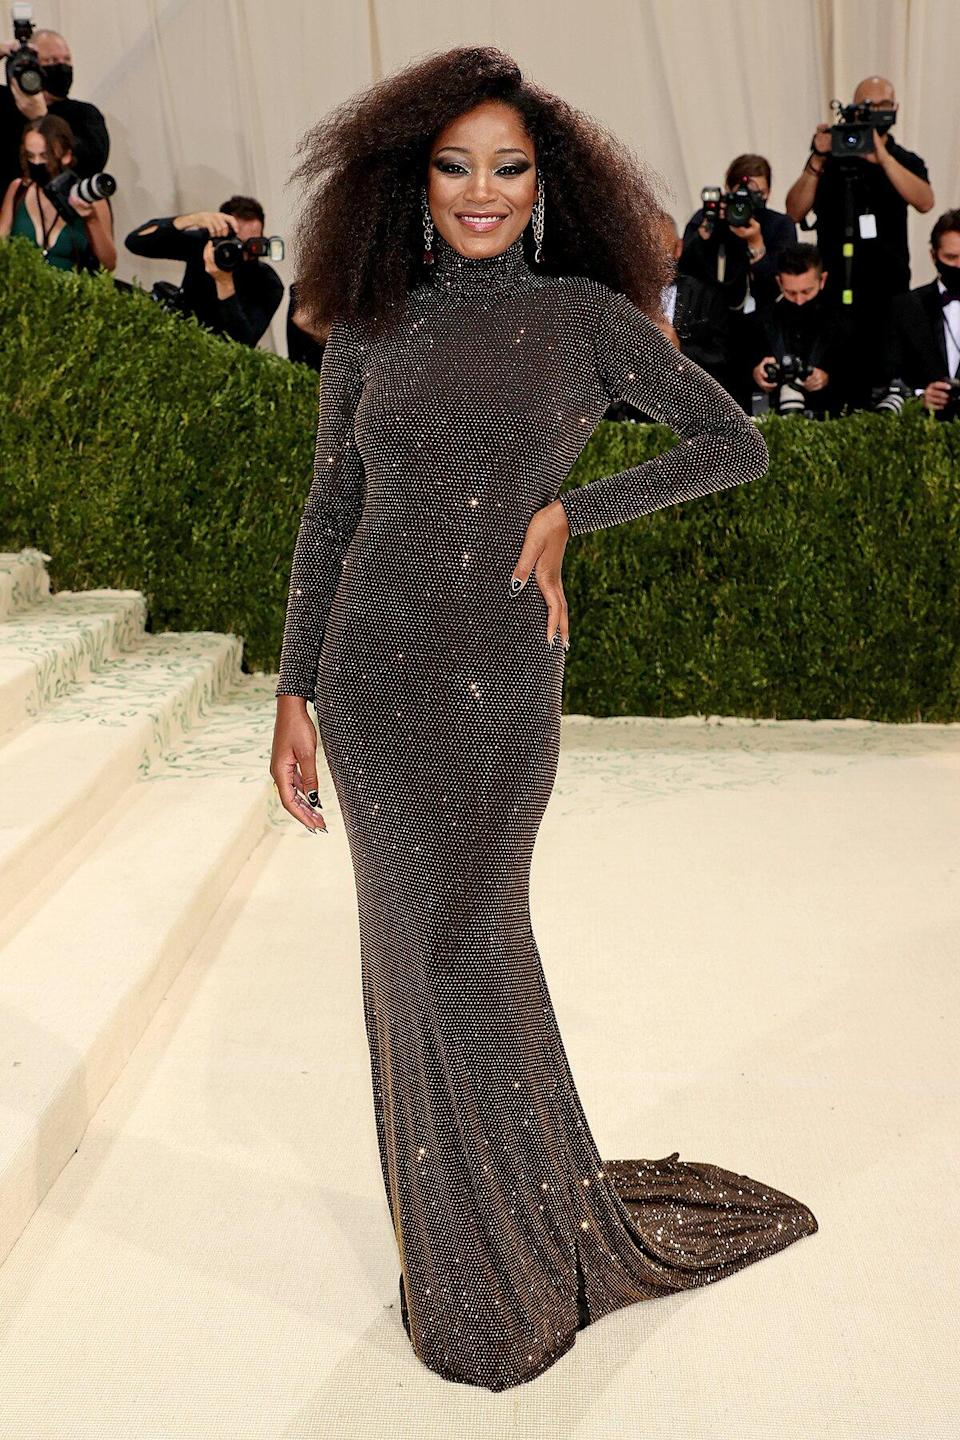 Keke Palmer attends The 2021 Met Gala Celebrating In America: A Lexicon Of Fashion at Metropolitan Museum of Art on September 13, 2021